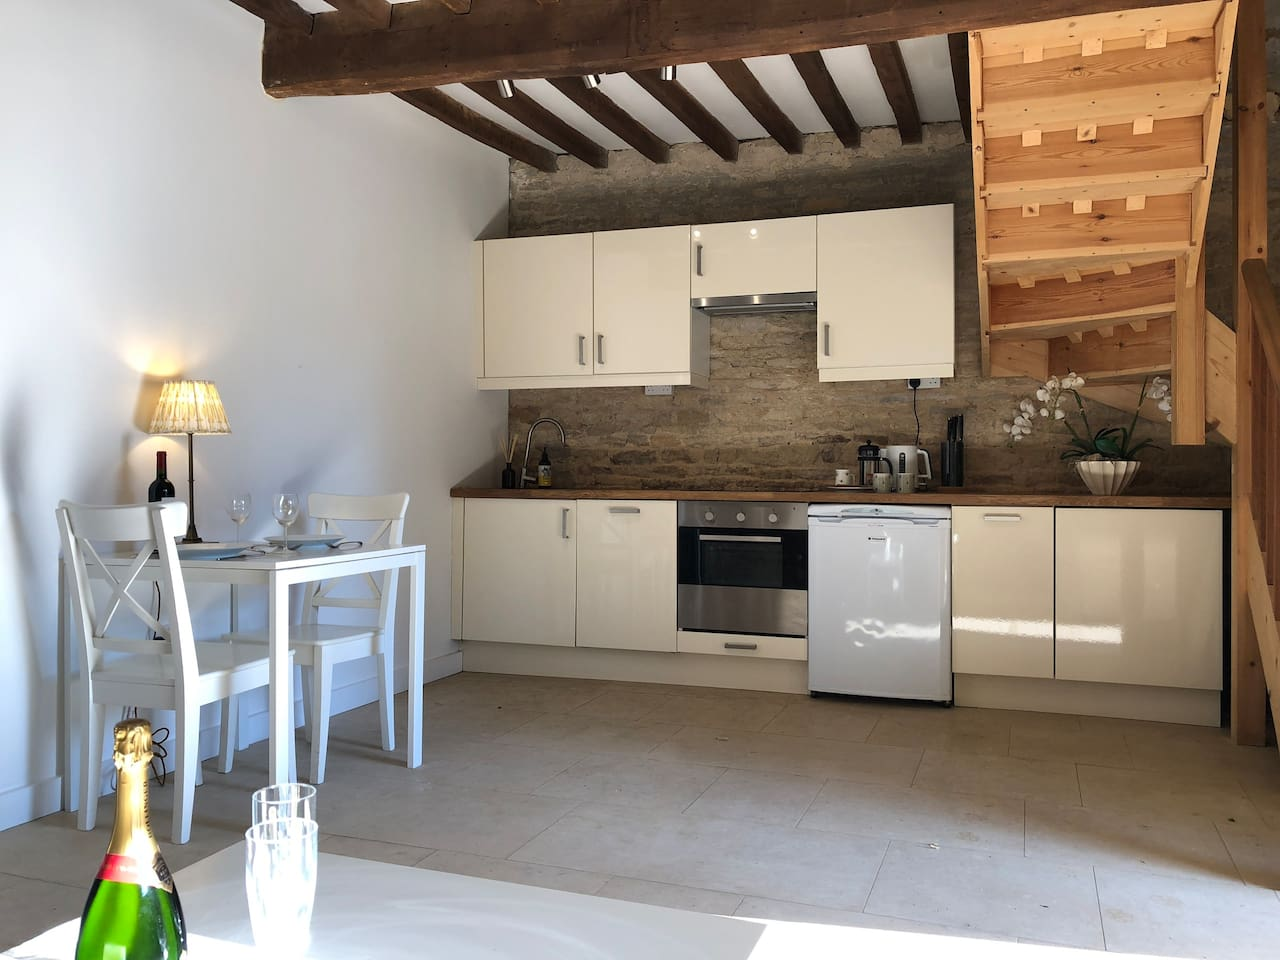 Well equipped kitchen and cosy dining space